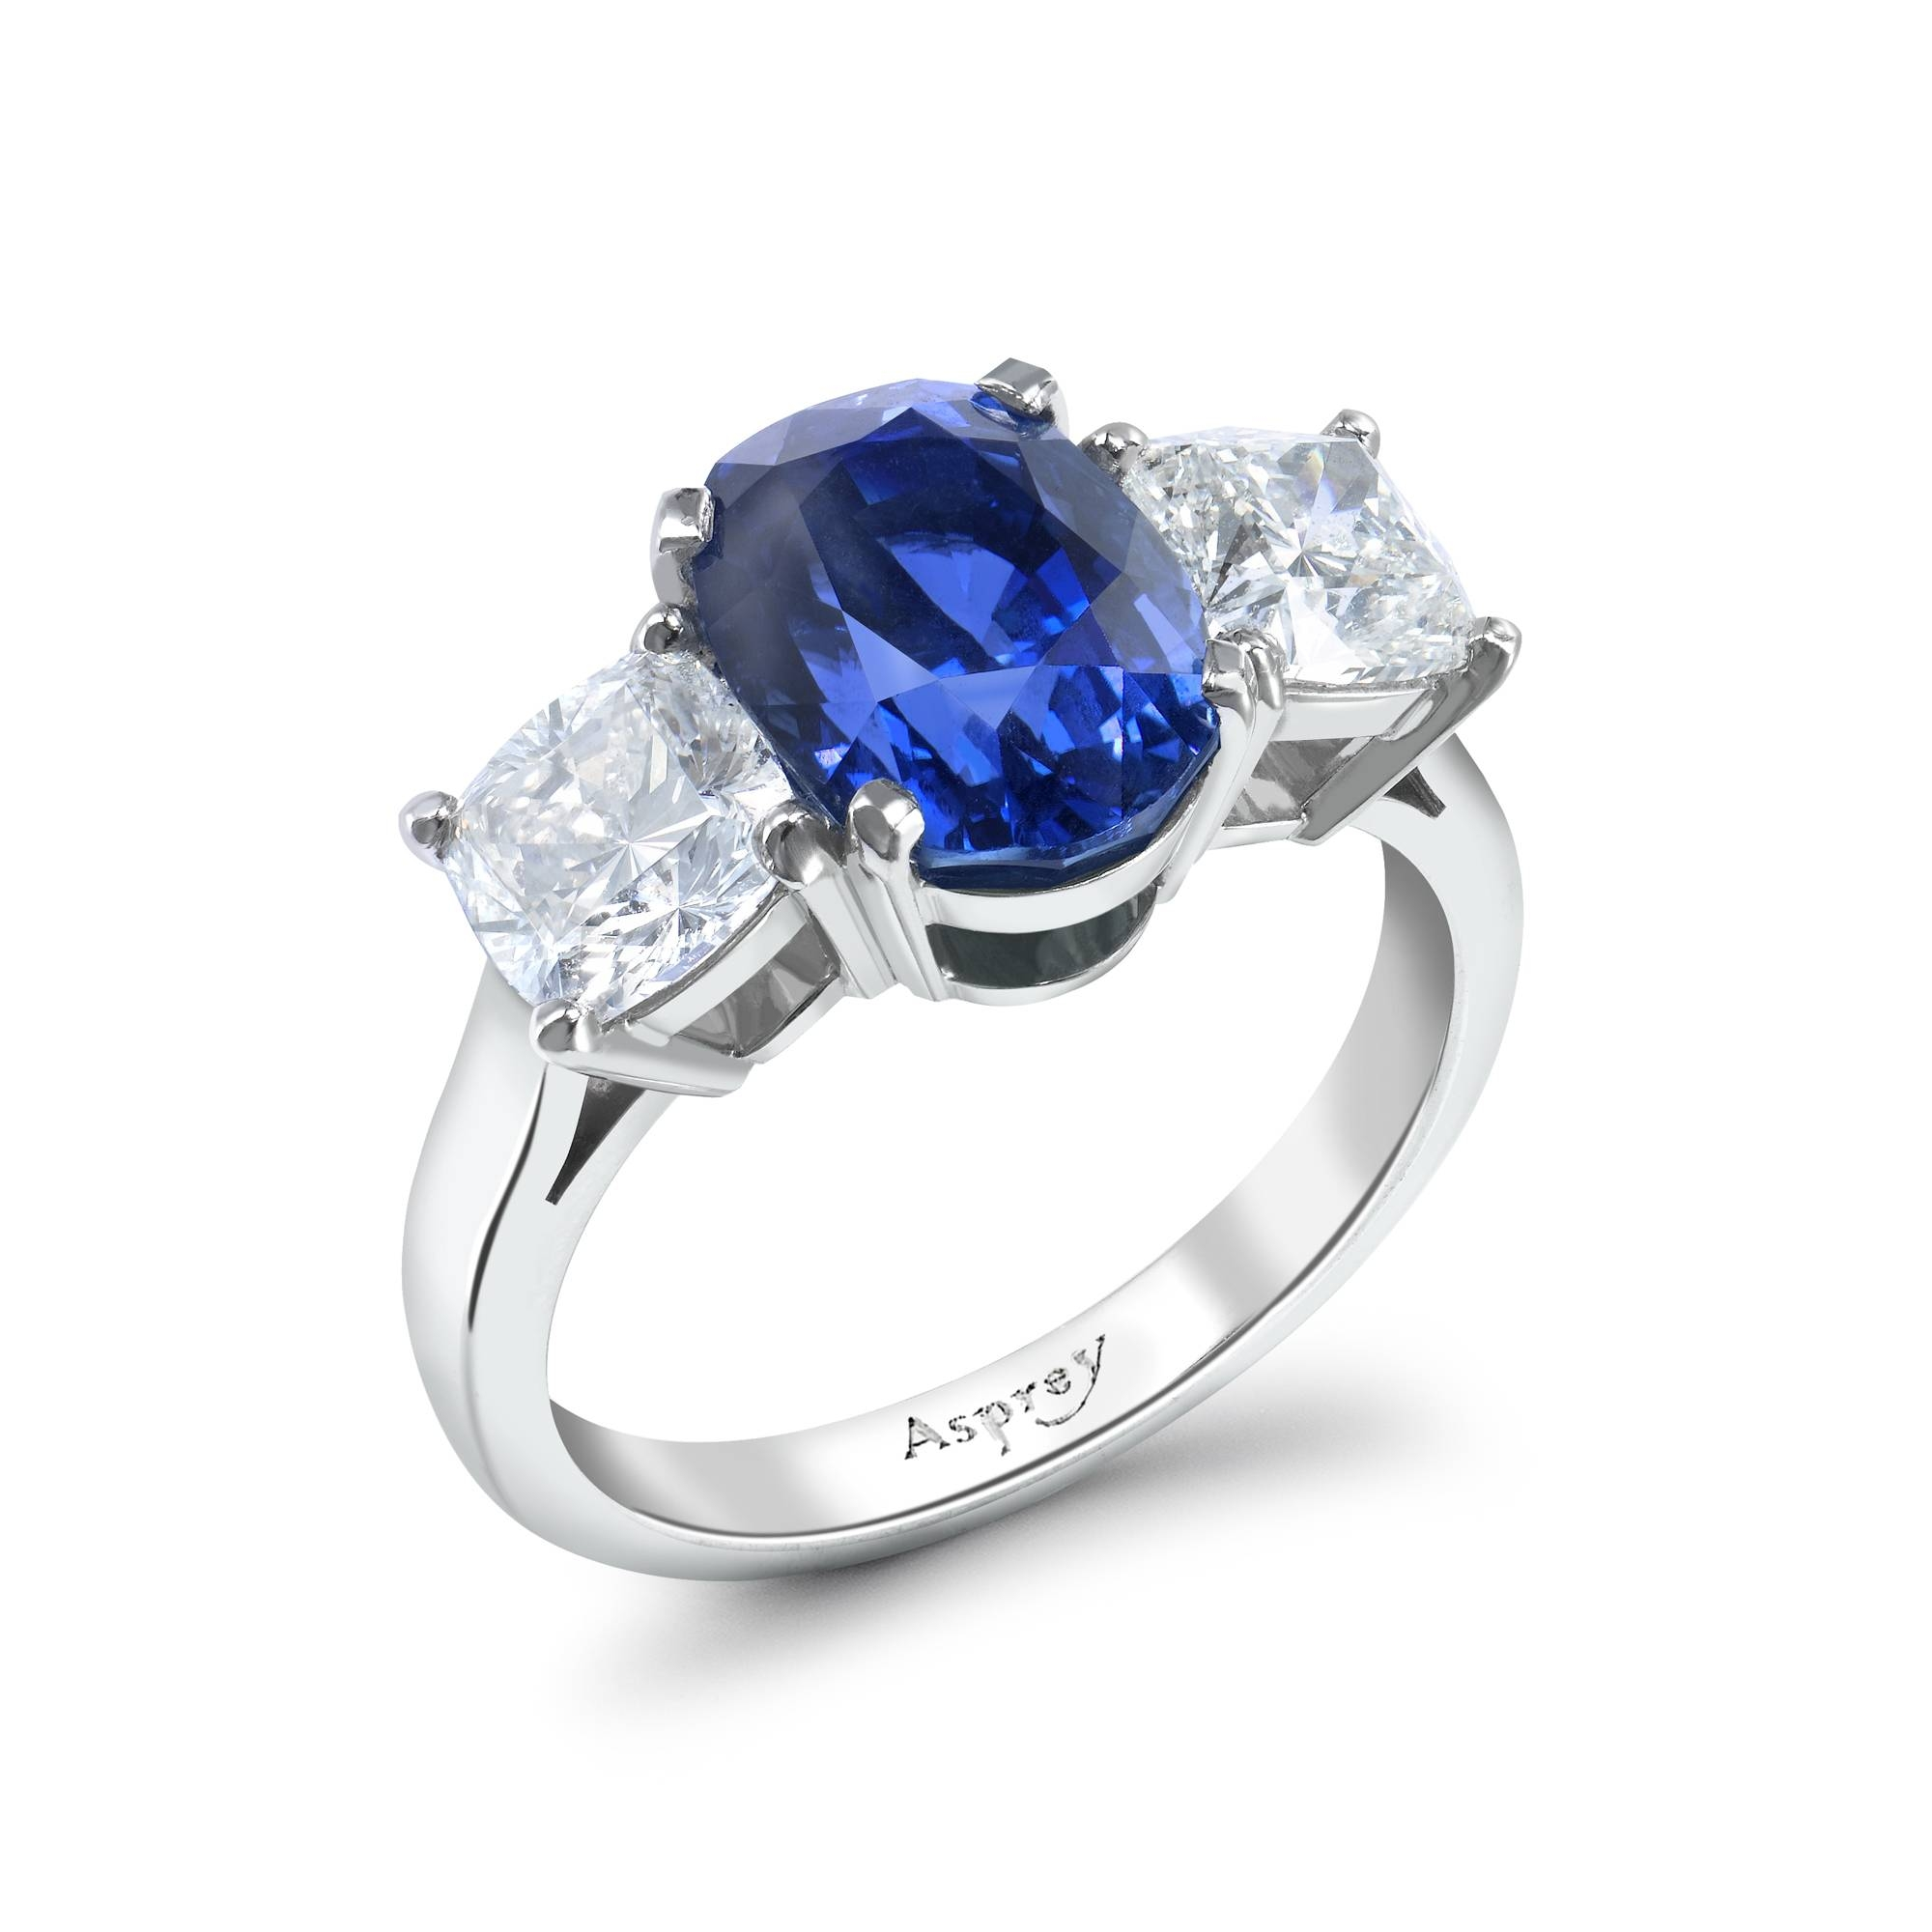 Engagement Rings : Awesome Diamond Engagement Rings With Sapphires Intended For Wedding Rings With Sapphire And Diamonds (View 8 of 15)